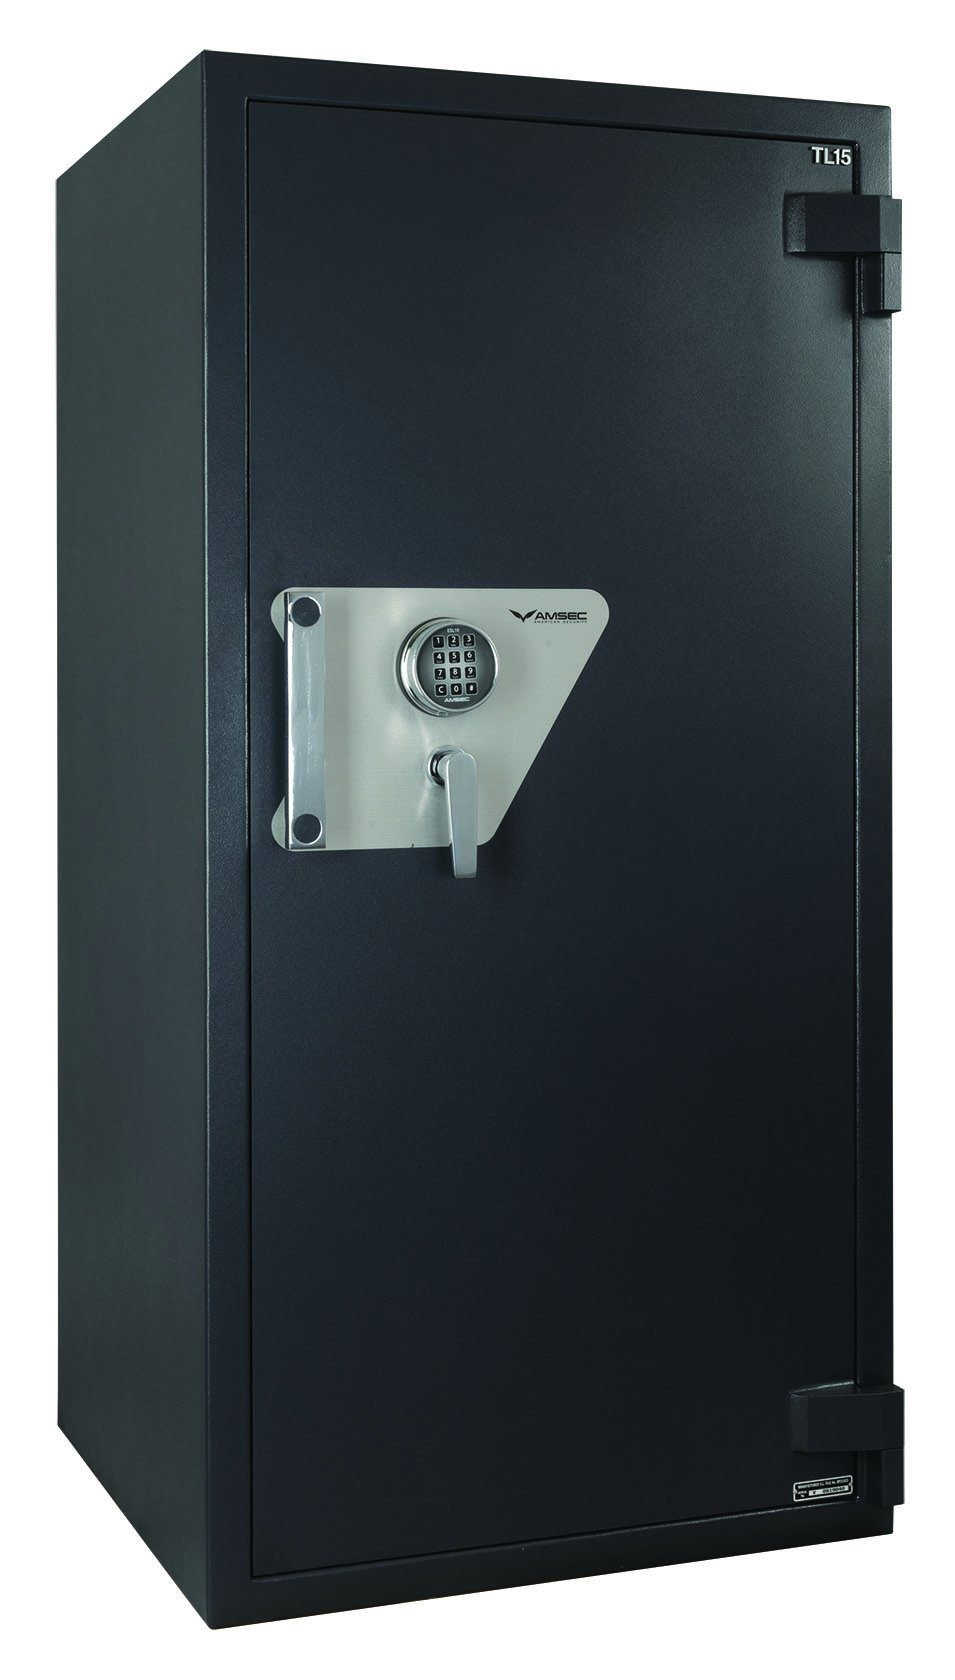 High Security Burglar Fire Safes - AMSEC MAX5524 High Security UL Listed TL-15 Composite Safe